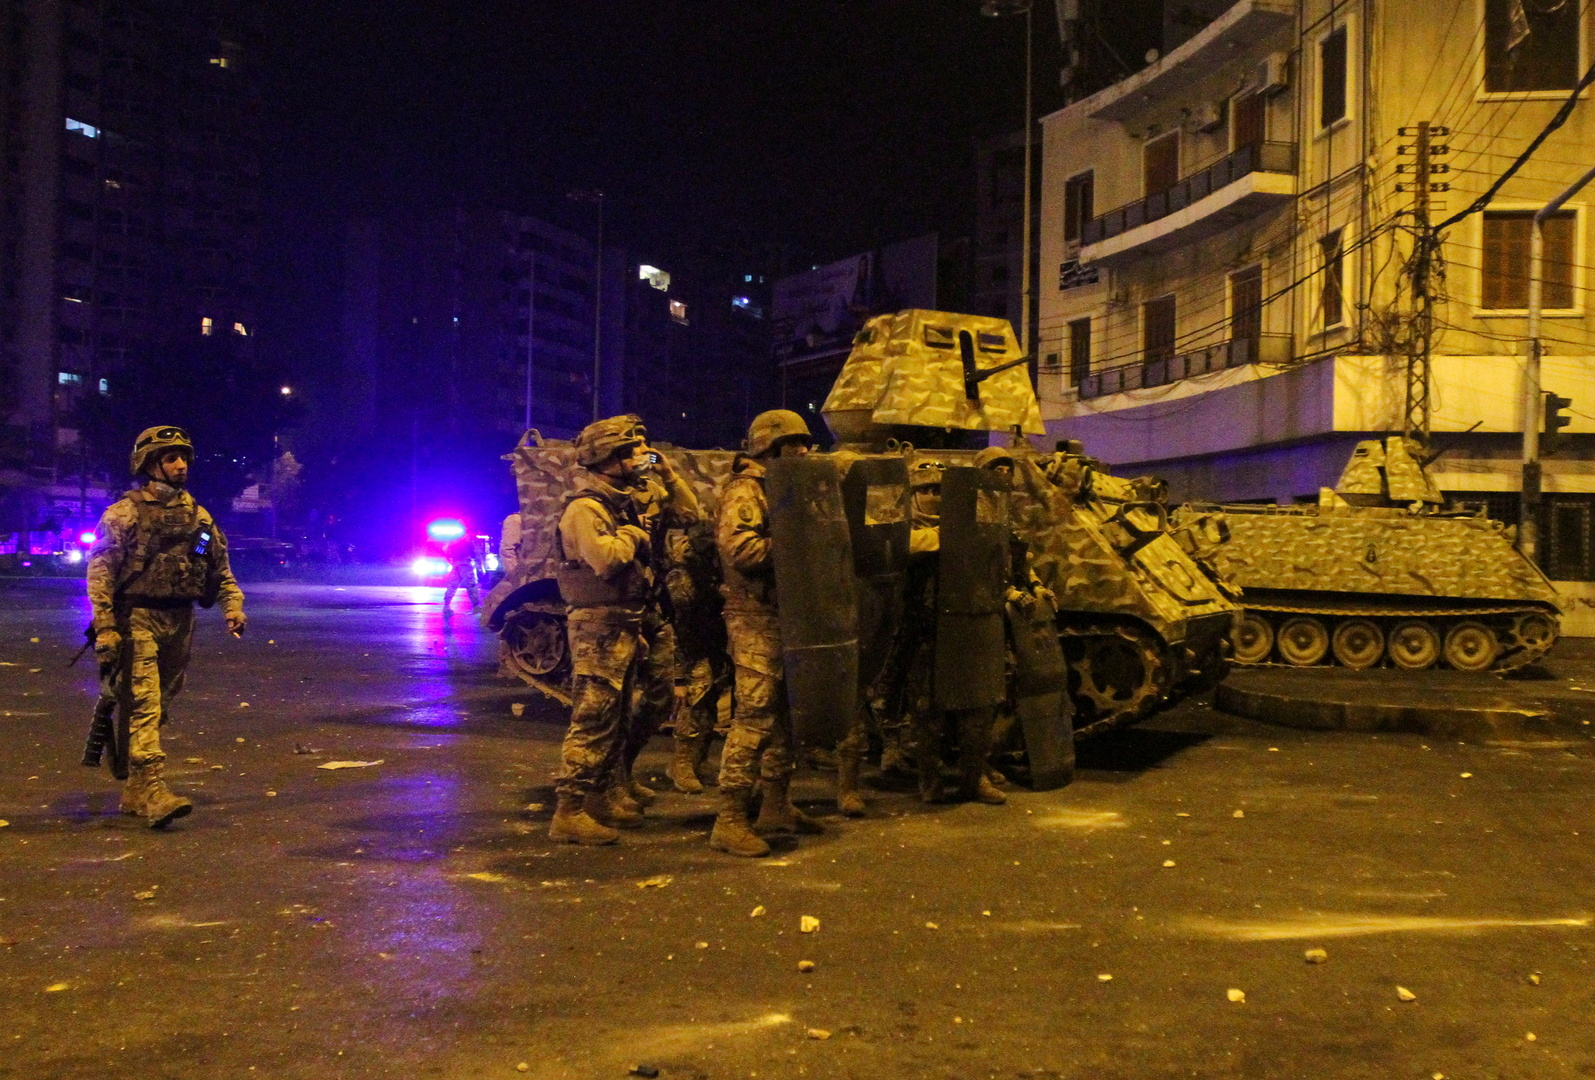 Lebanon..More than 30 military personnel were injured as a result of the protests in the city of Tripoli